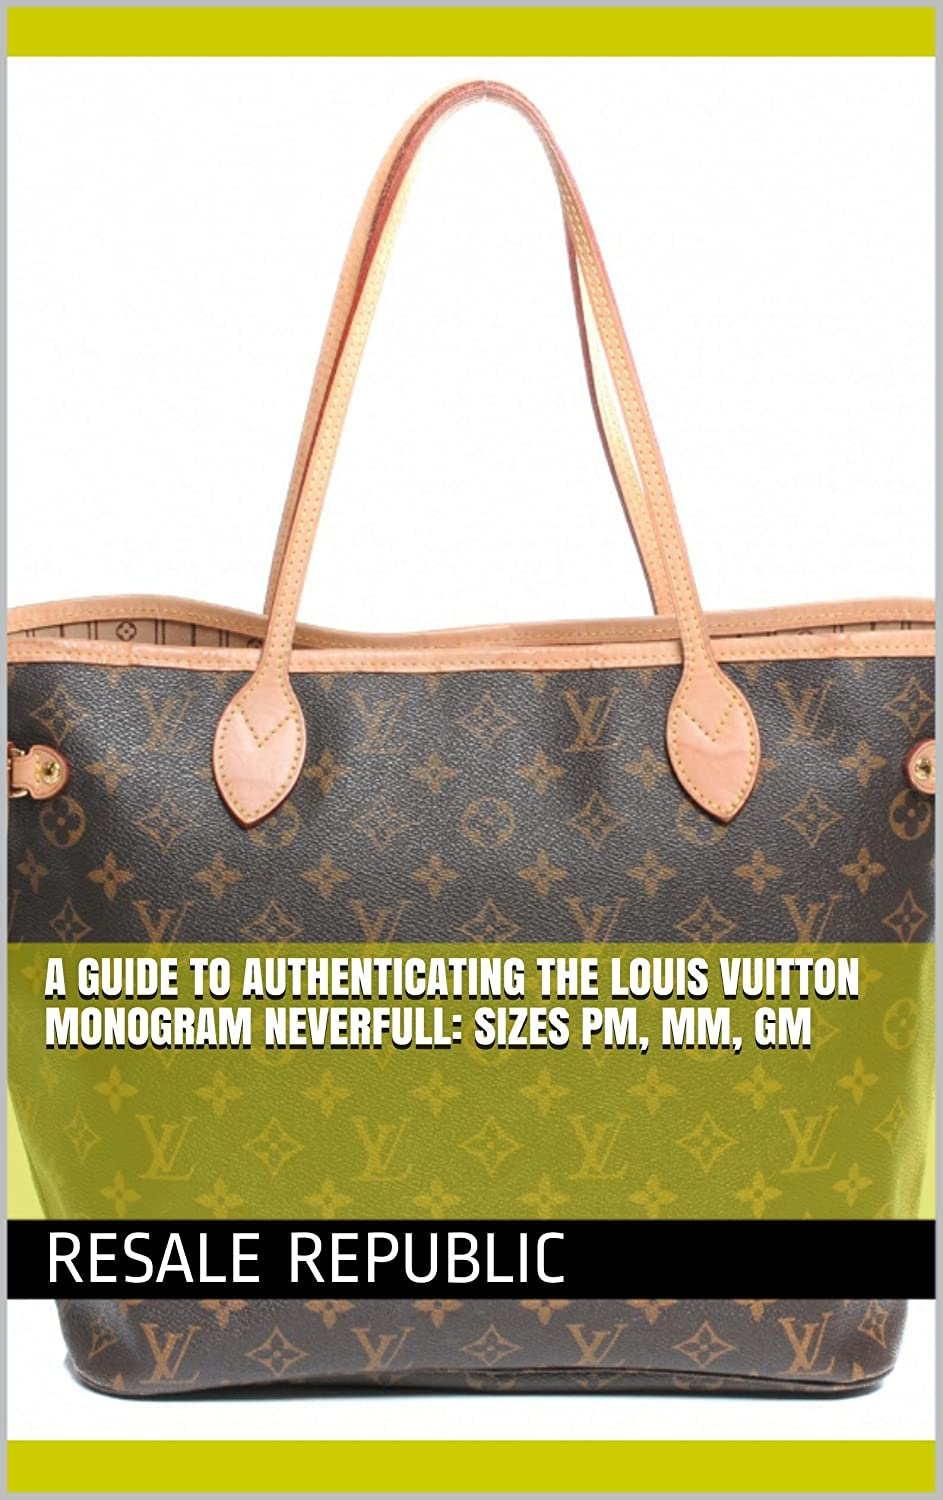 01678f14a213 A Guide to Authenticating the Louis Vuitton Monogram Neverfull ...